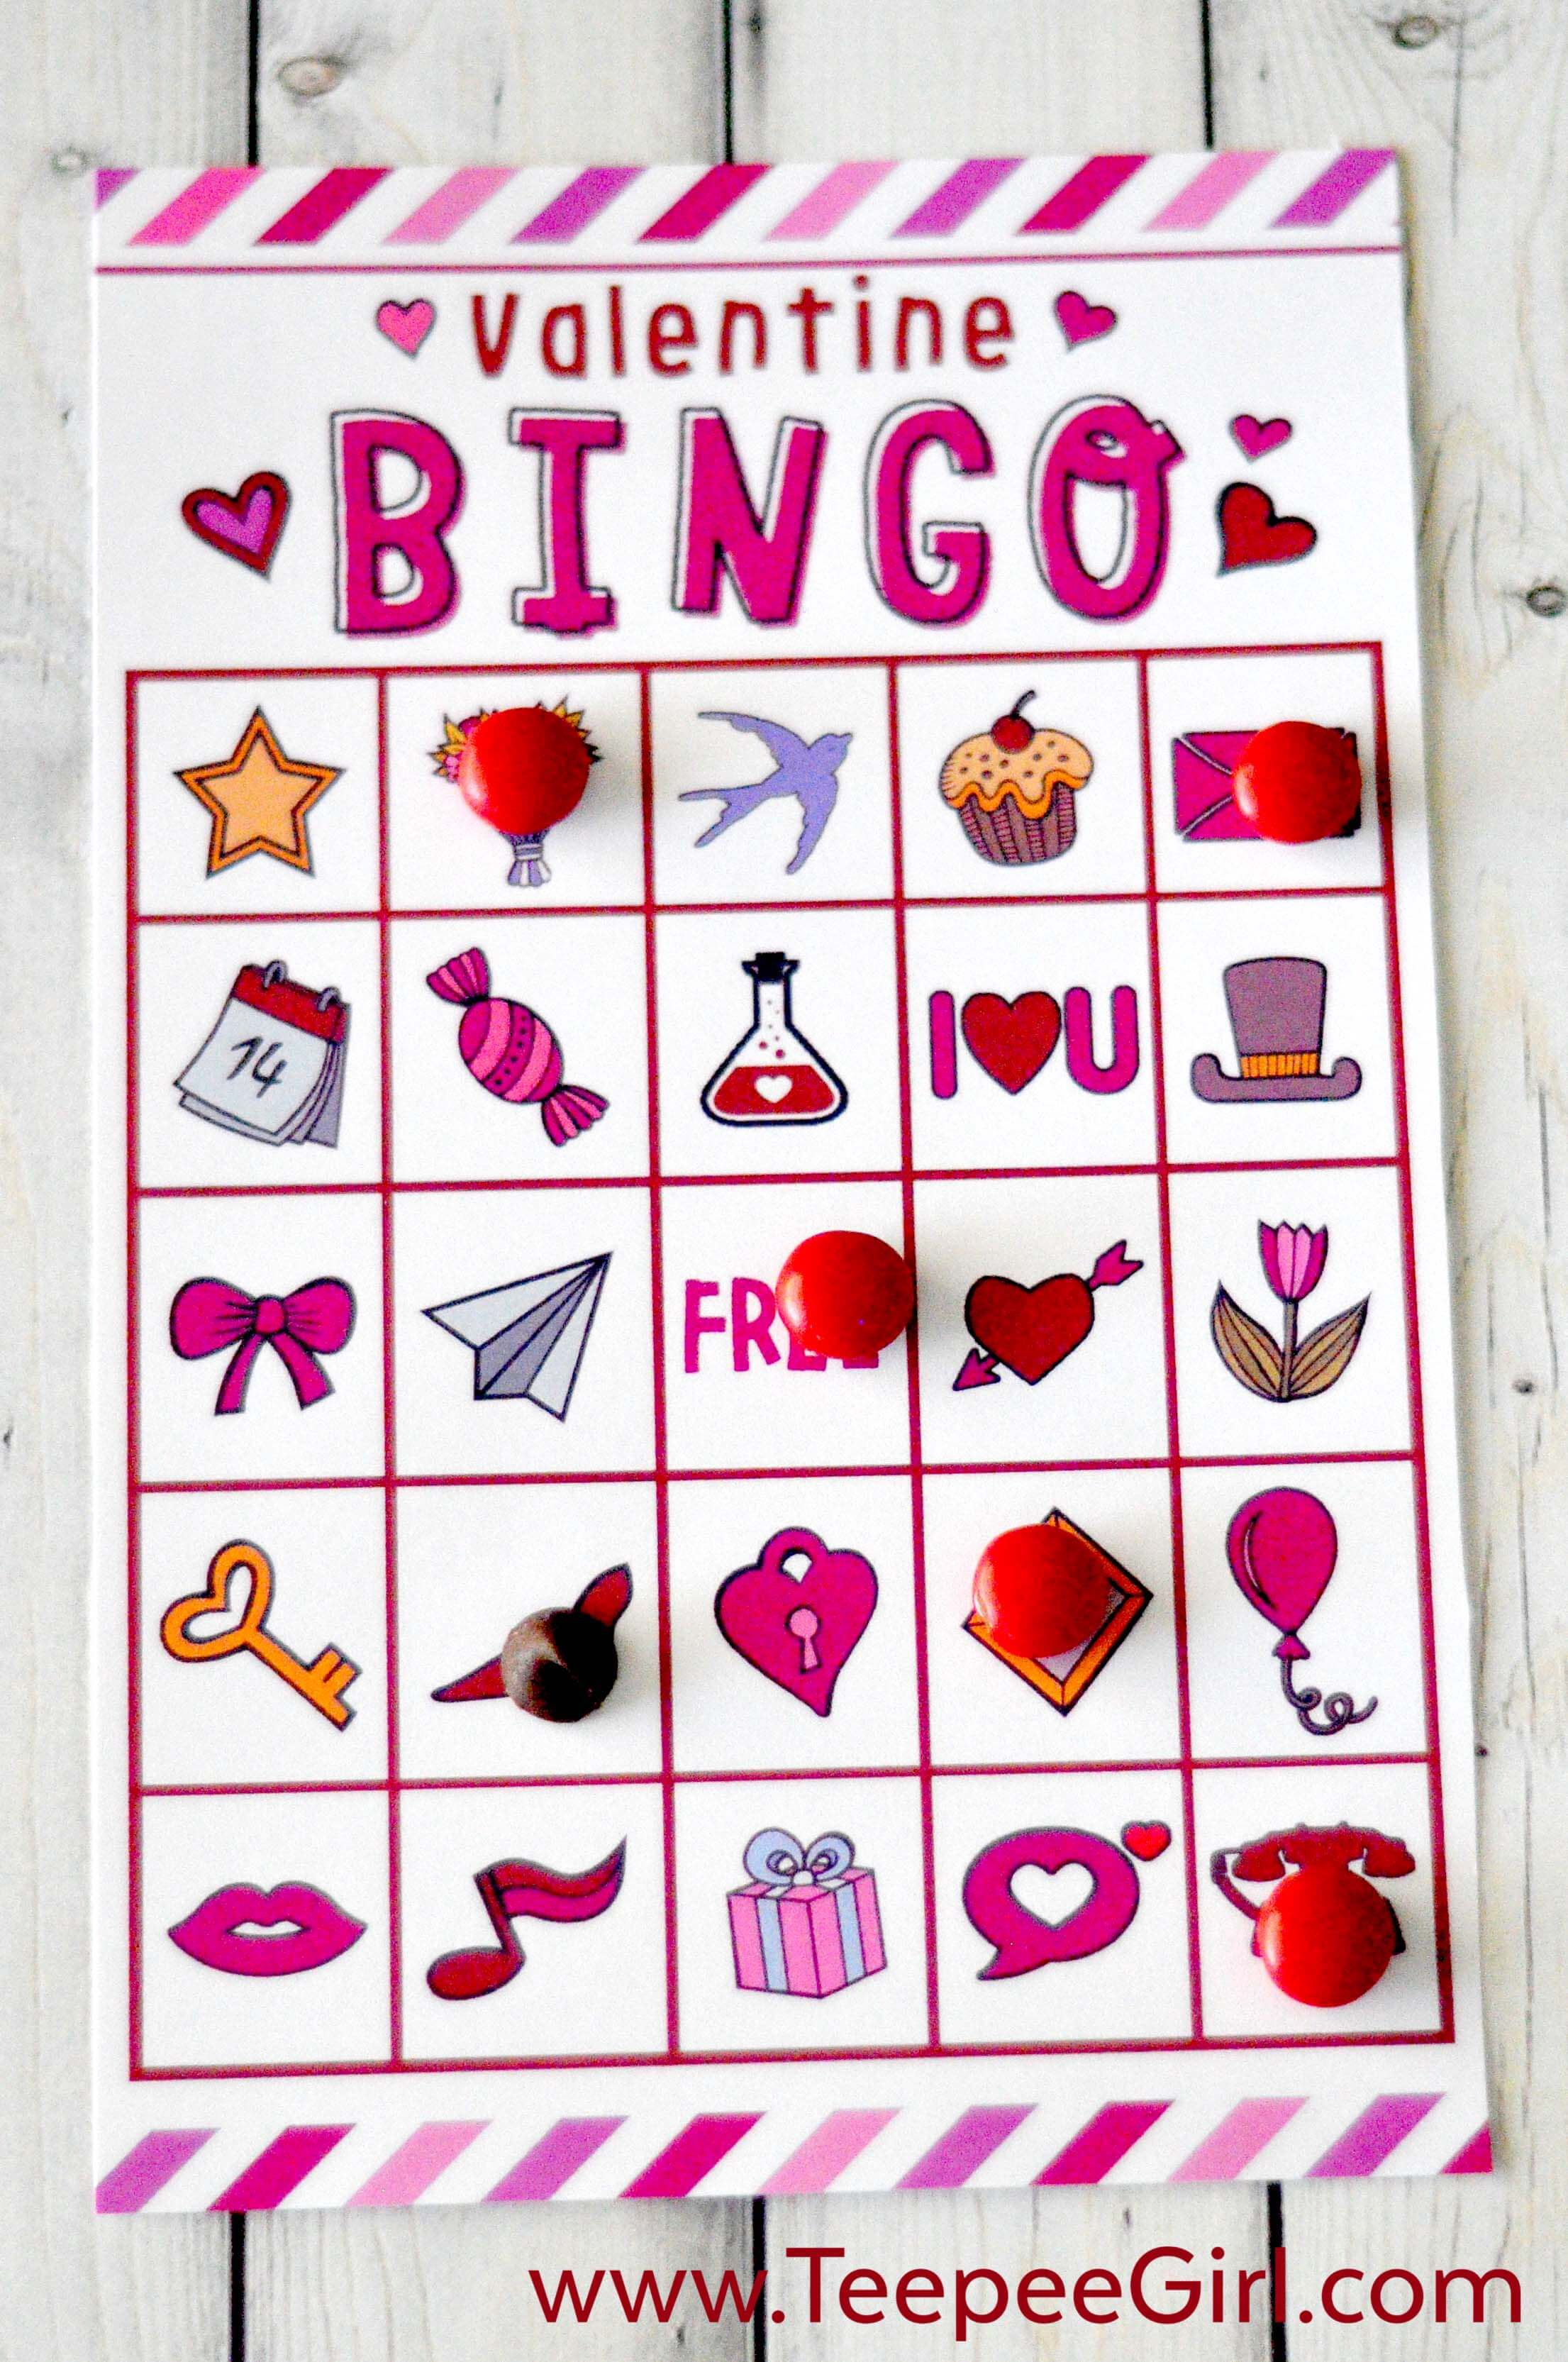 image about Printable Kid Valentine referred to as No cost Valentines Working day Printable Bingo Match